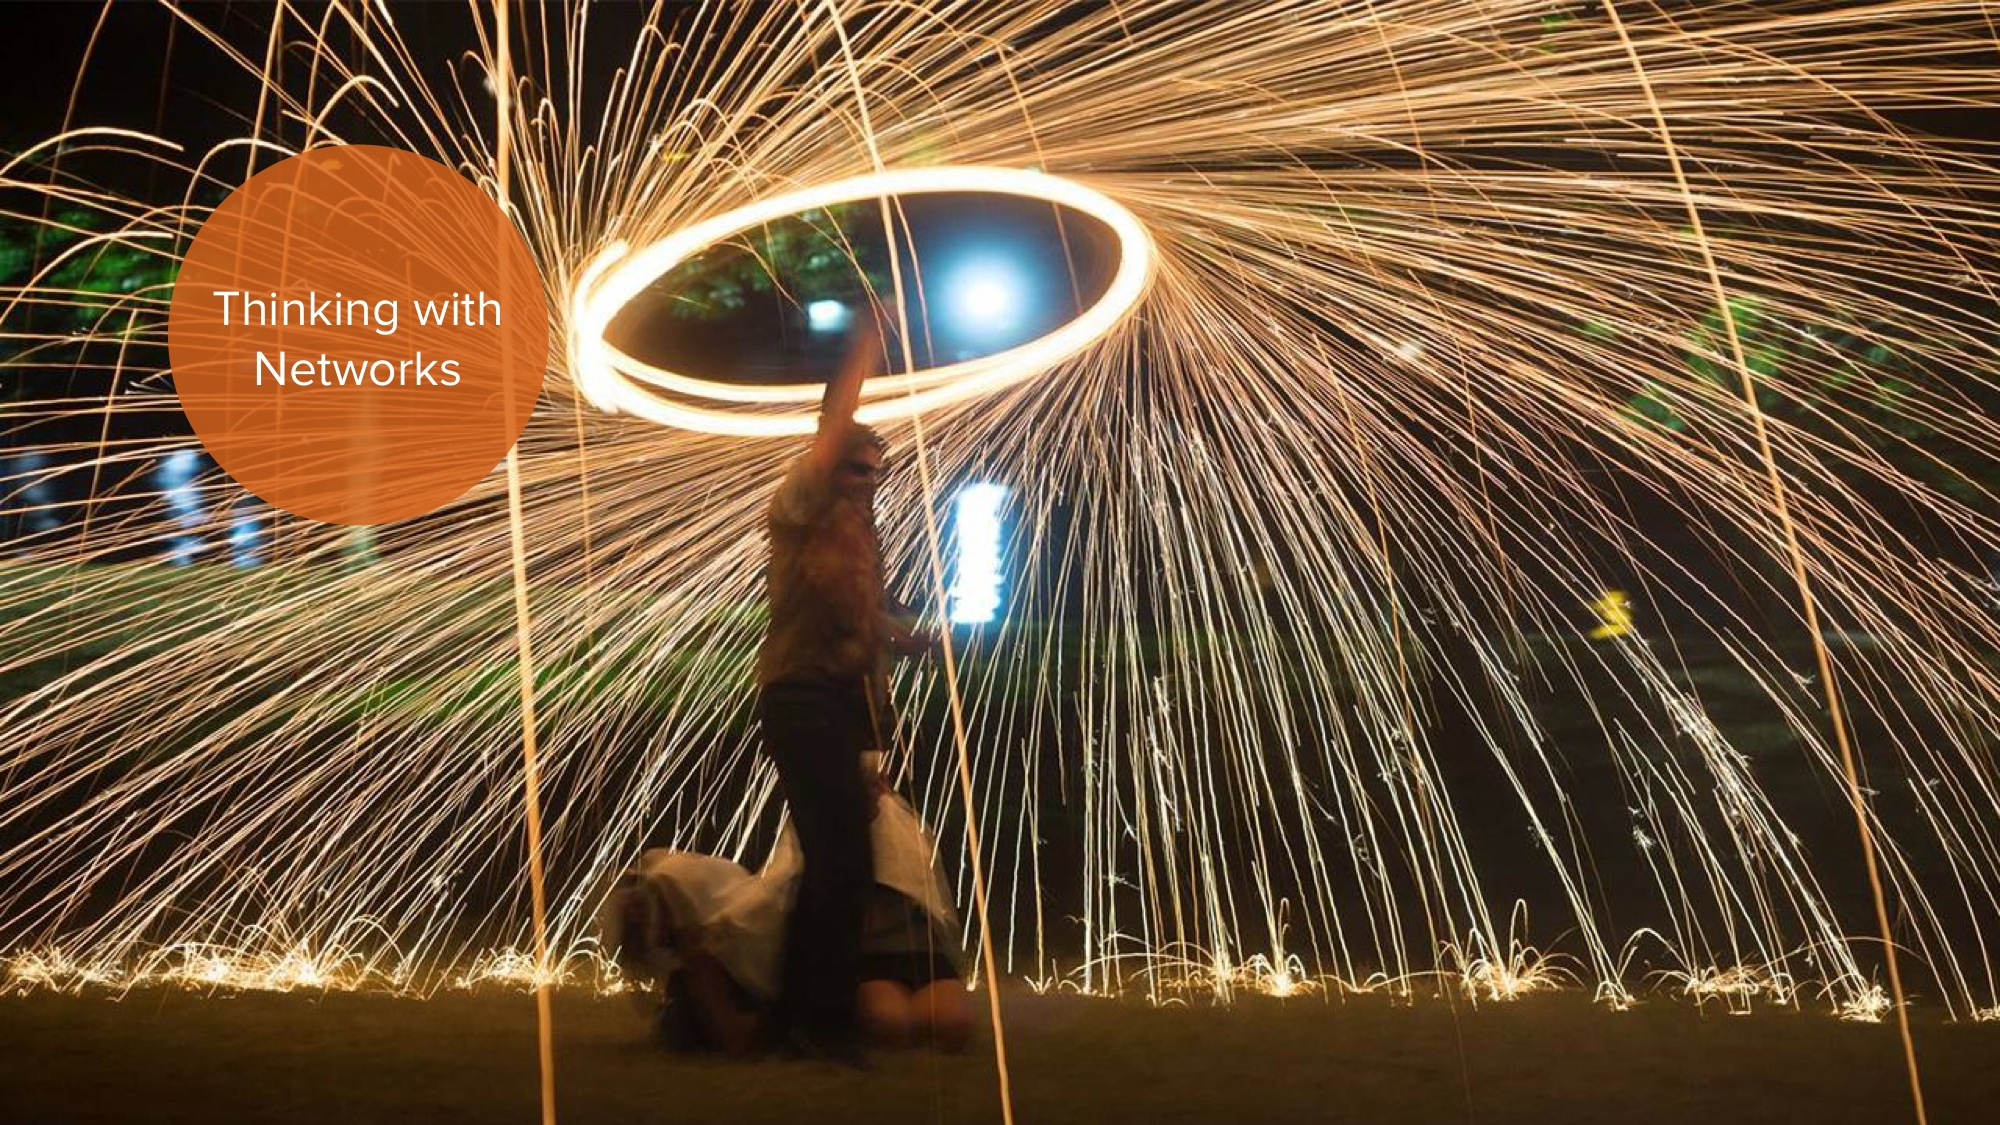 2014.10.17 - -How Are Ideas Connected- Drawing the Design Process of Idea Networks in Global Game Jam- - Meaningful Play 2014 22.jpeg